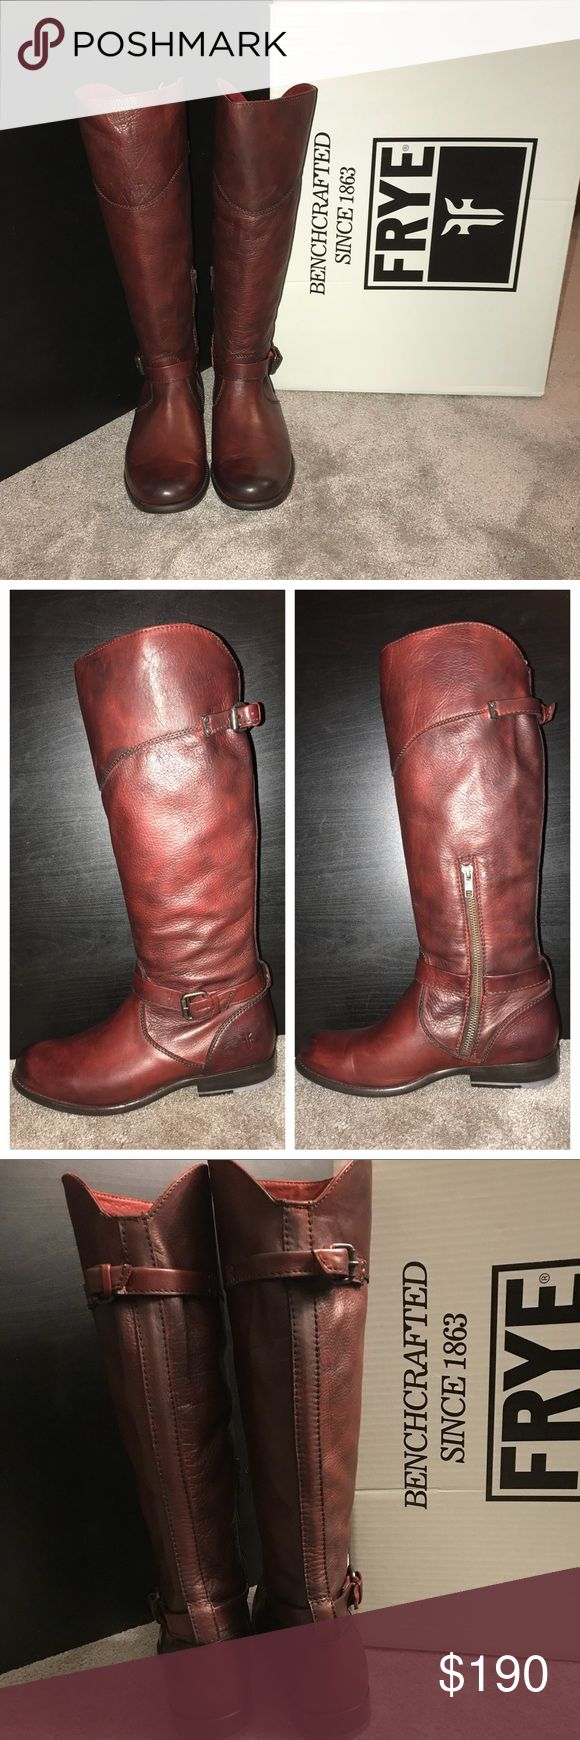 Frye Boots Frye Boots Size 9. Style Phillip Riding. Color Burnt Red. Brand new. Never worn. Original box. Frye Shoes